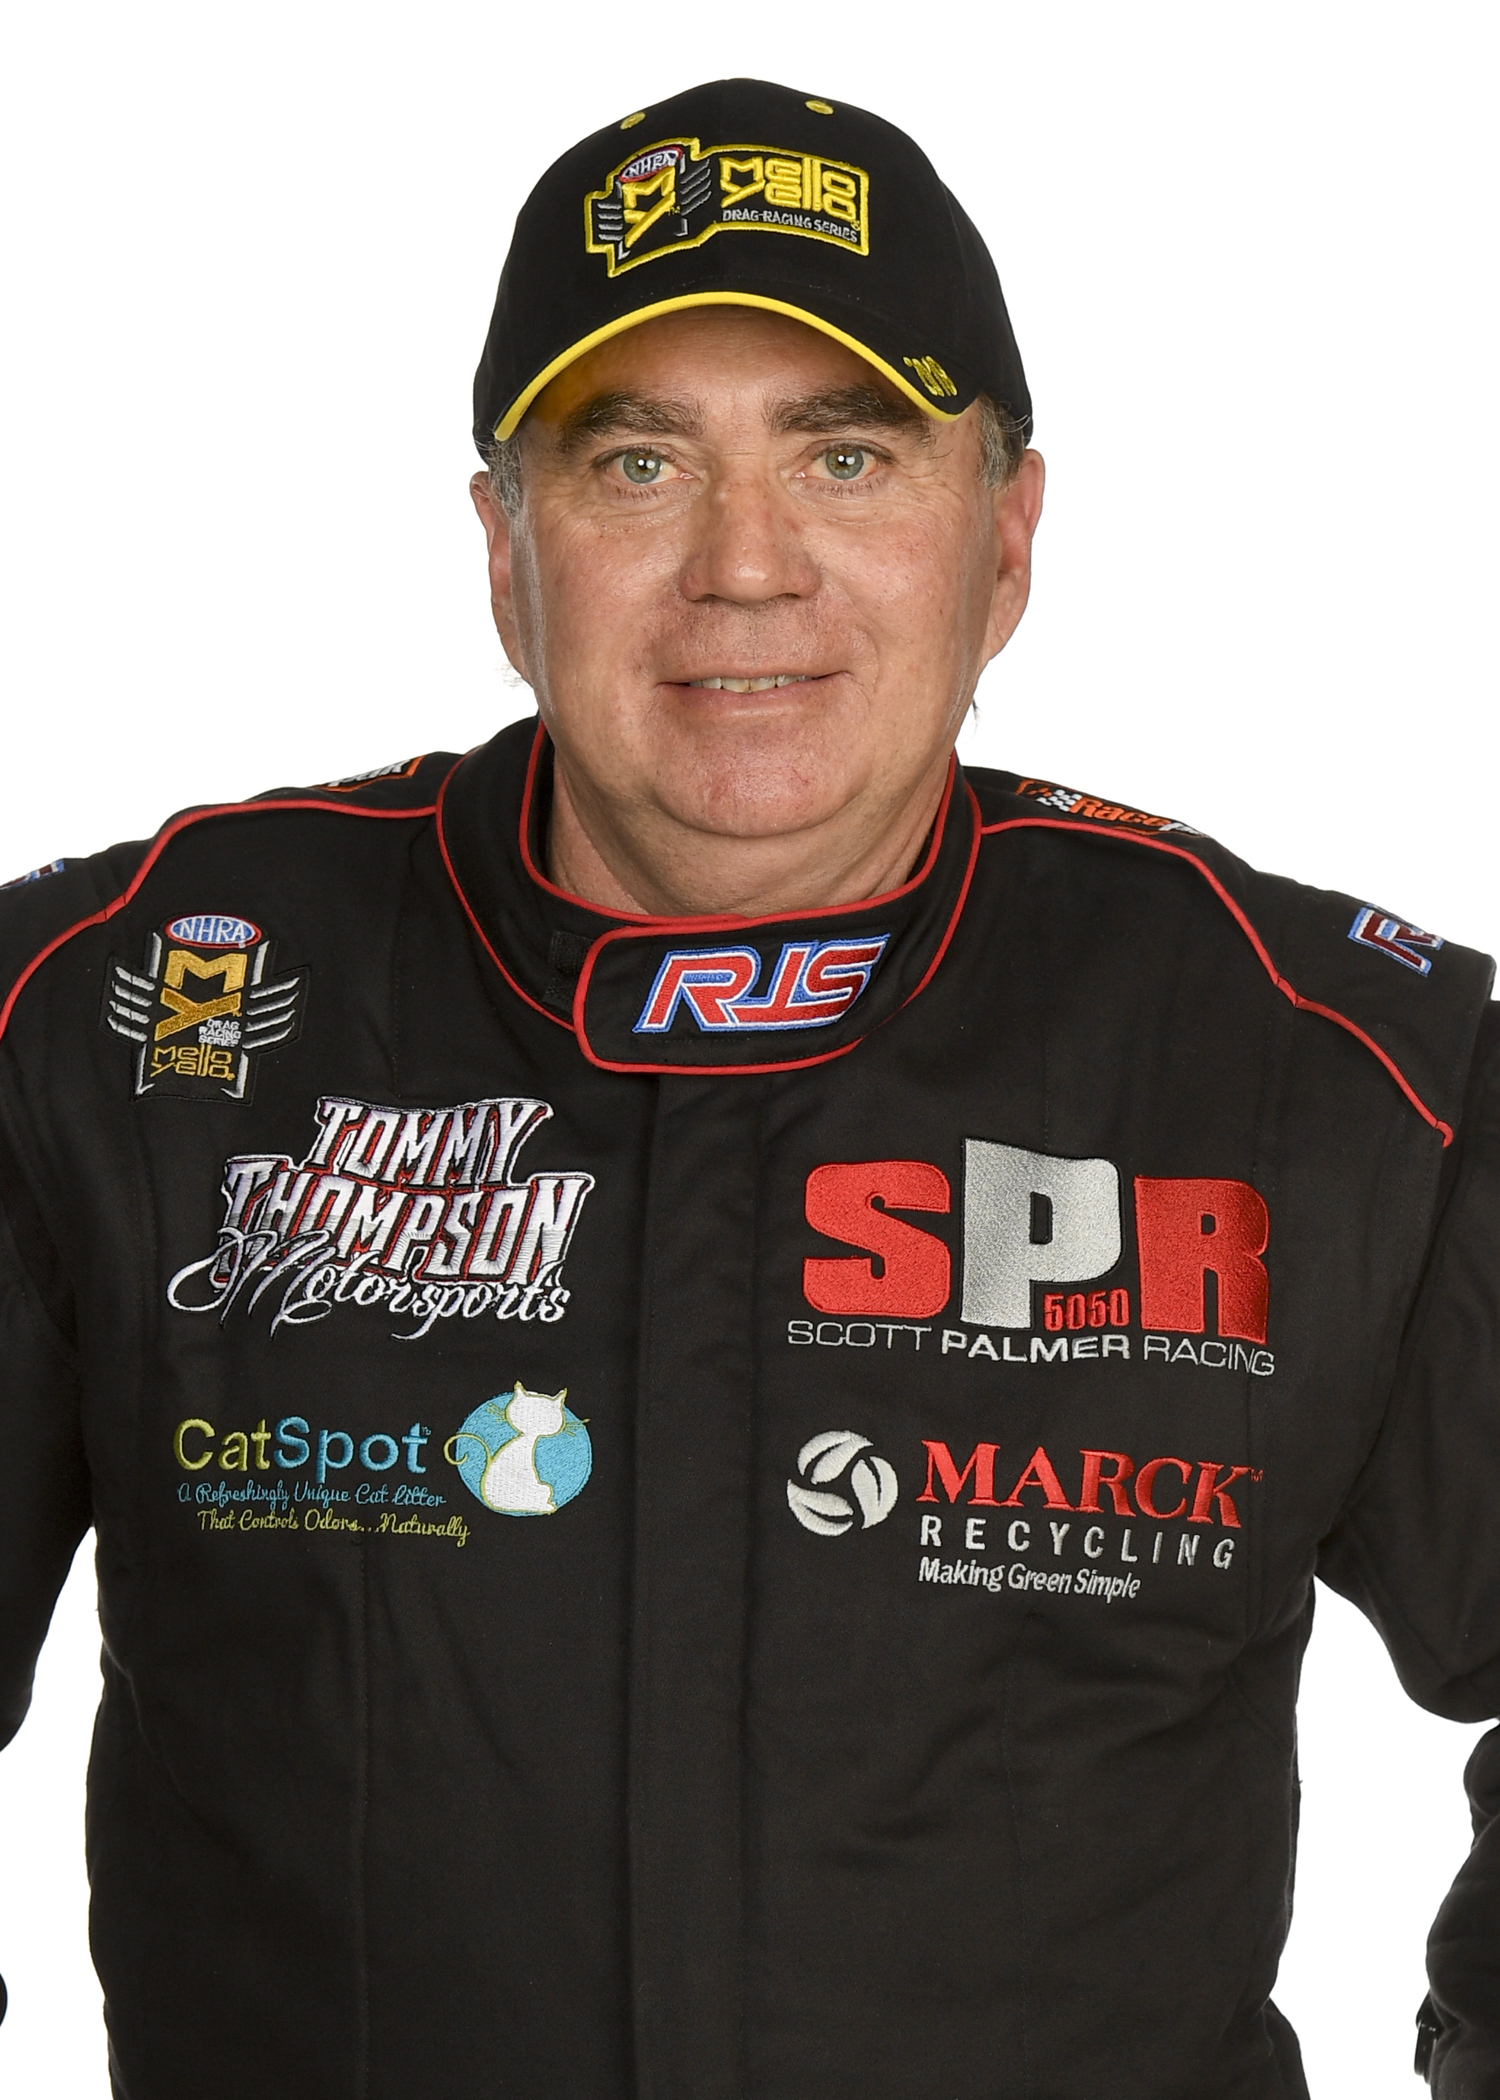 NHRA Top Fuel Scott Palmer